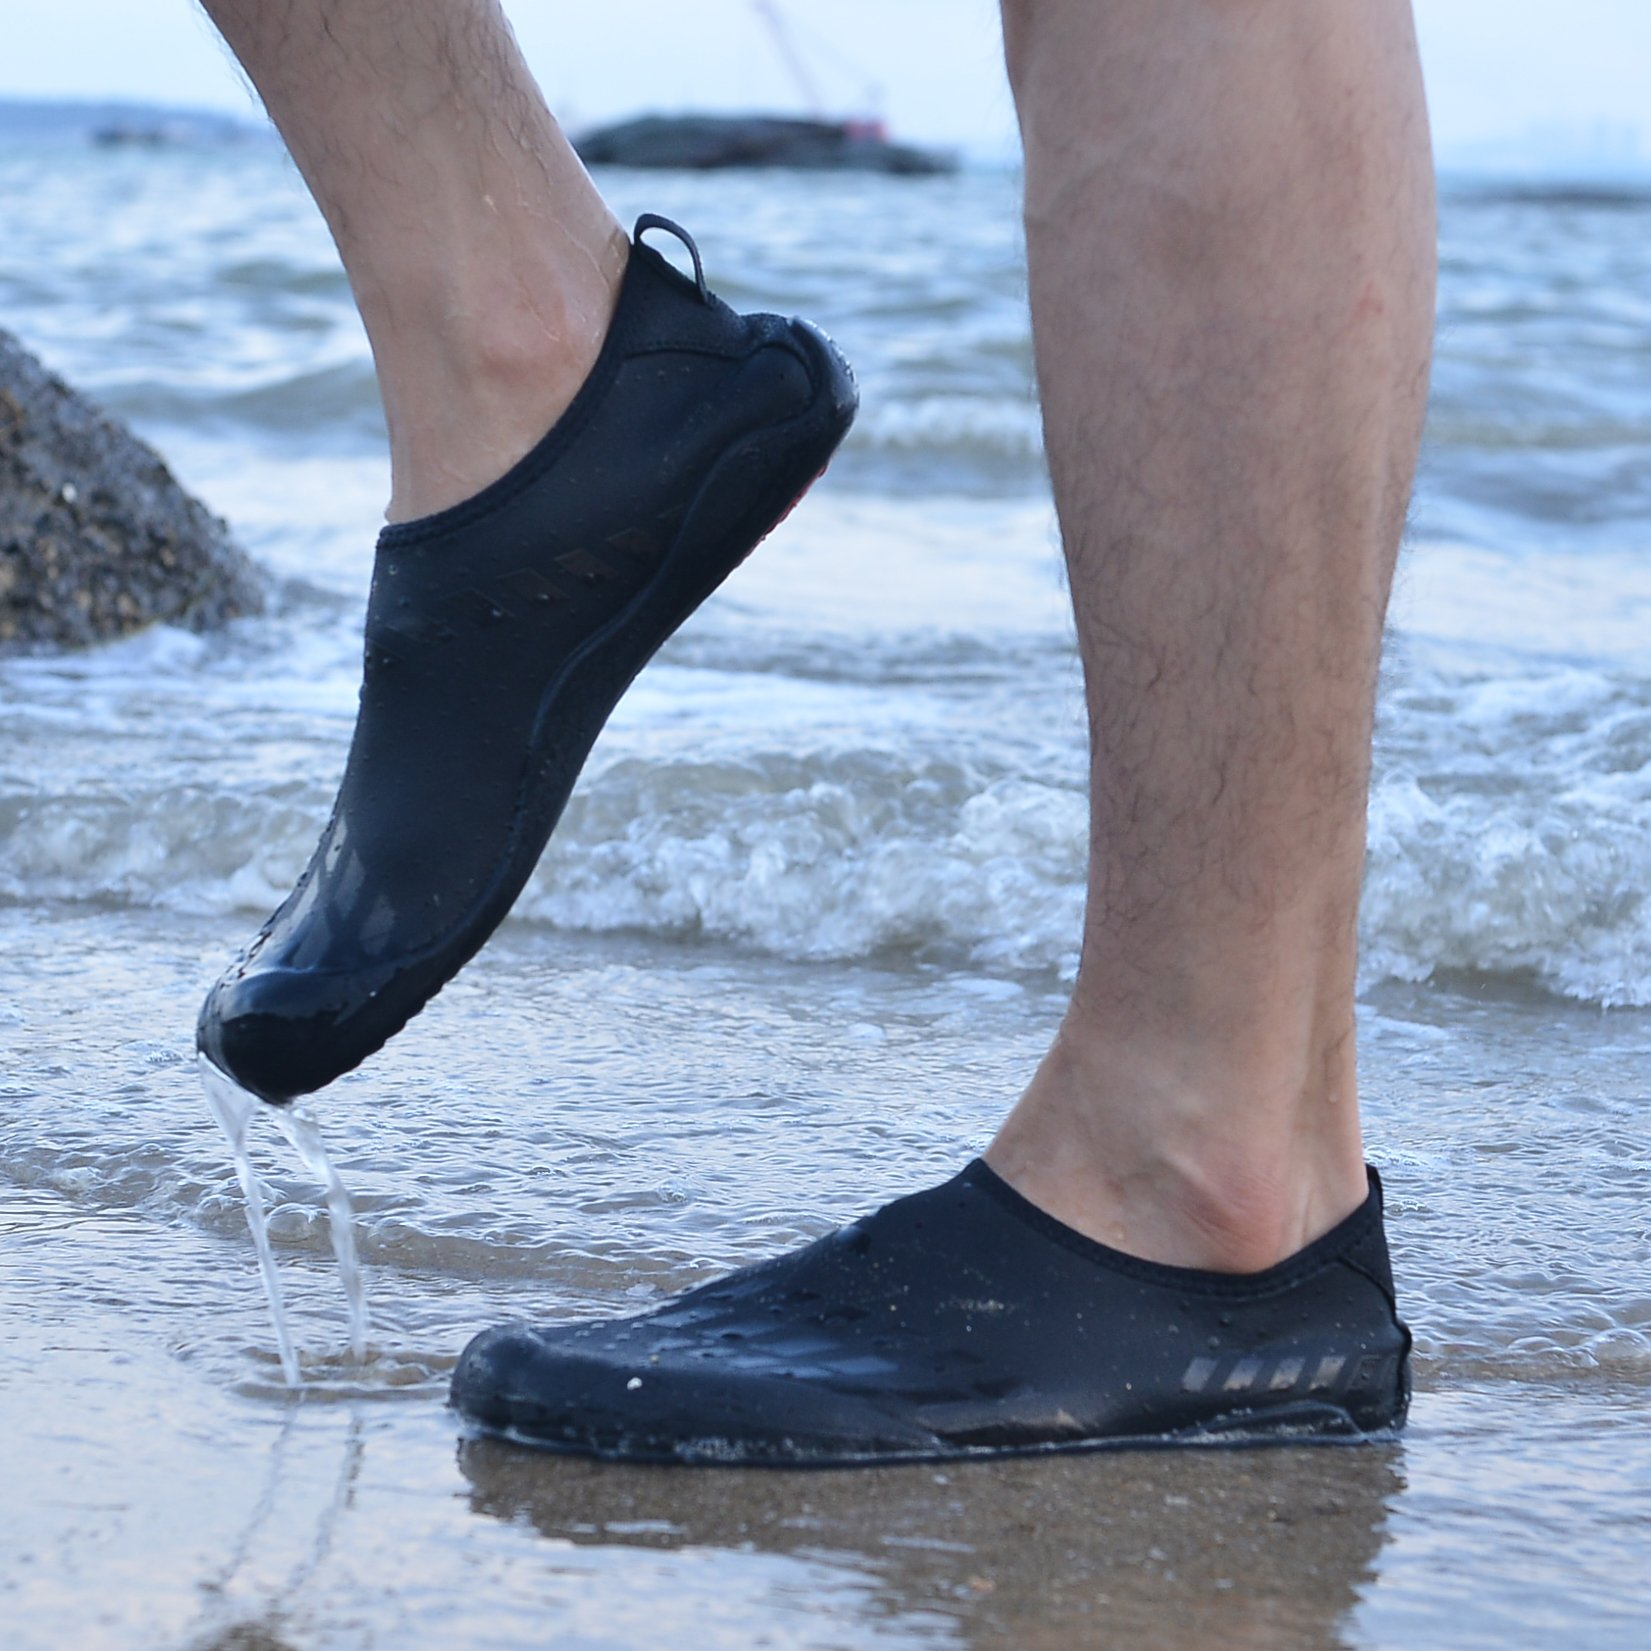 APTESOL Hiking Water Shoes Mens Womens Quick Dry Beach Swim Barefoot Aqua Socks Shoes for Pool Surf Yoga Water Sports(Black,44) by APTESOL (Image #5)